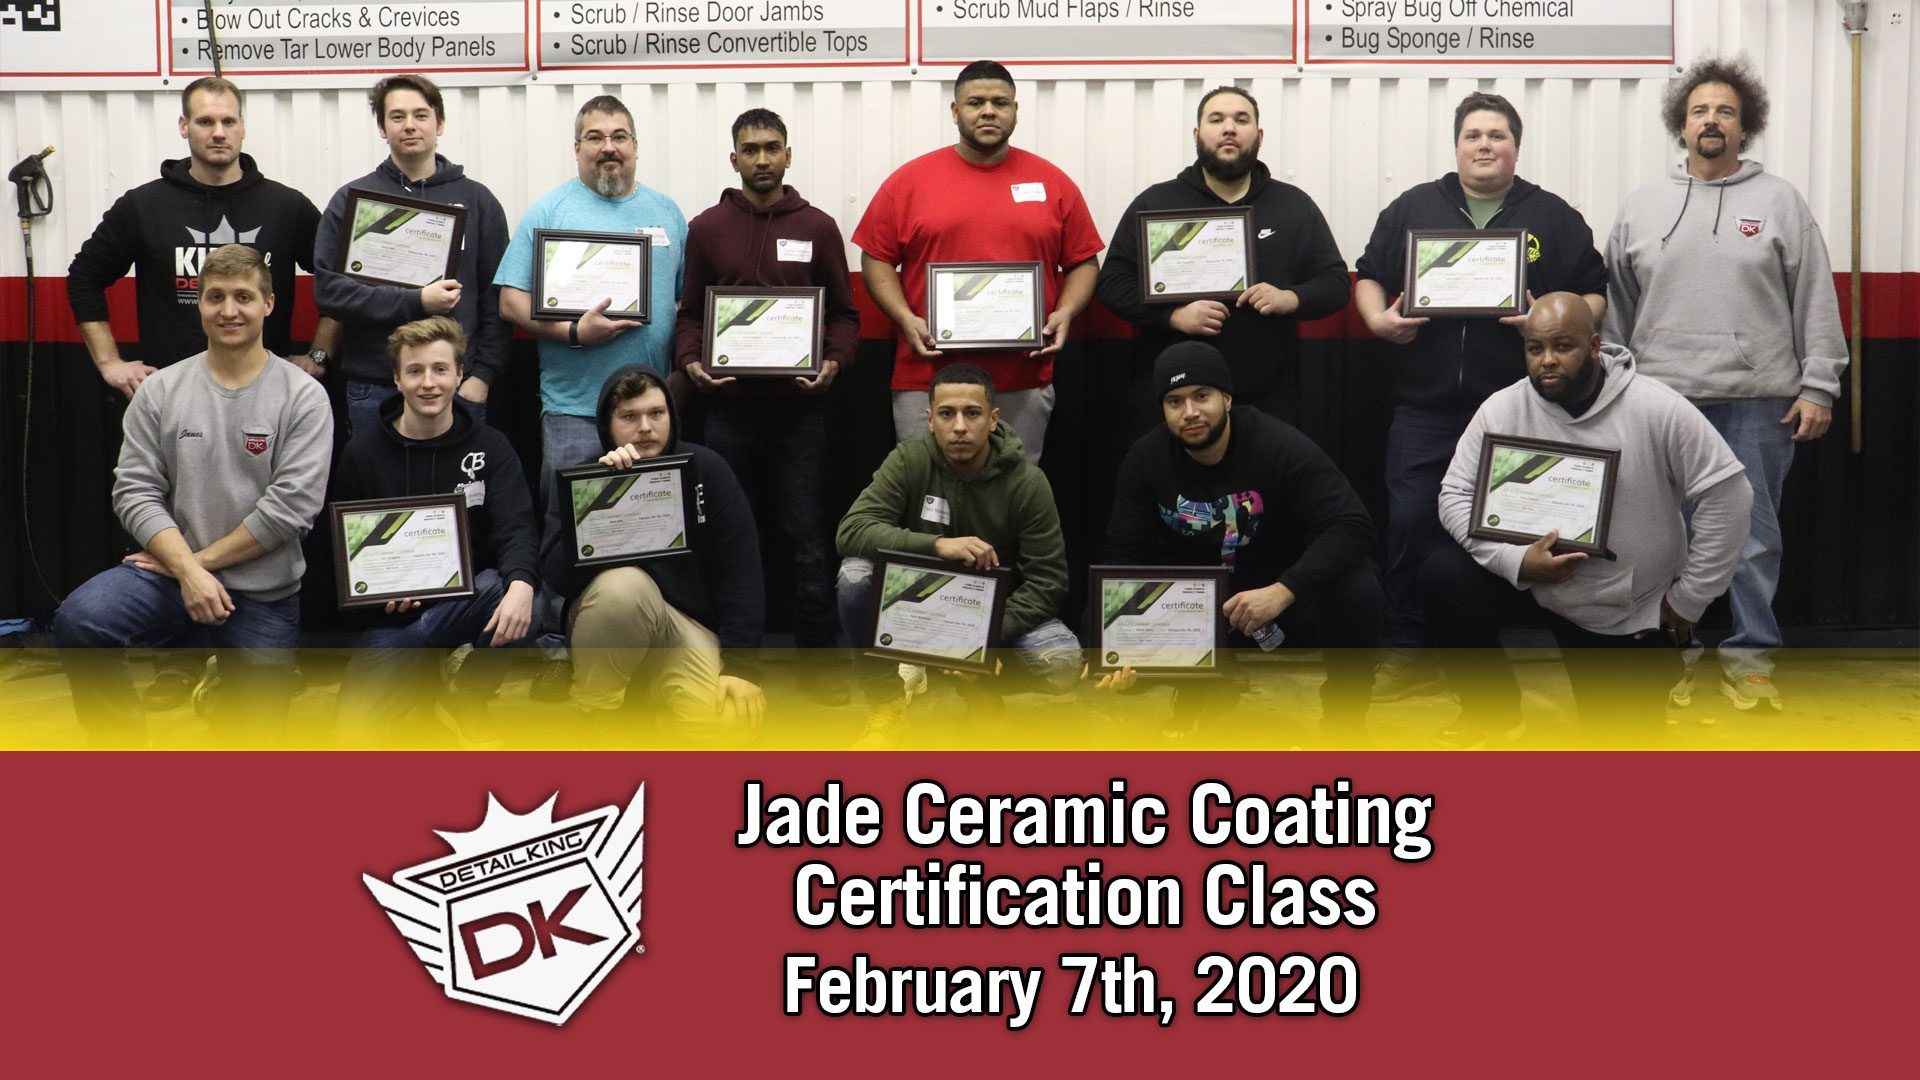 Jade Ceramic Coating Class! February 7th, 2020